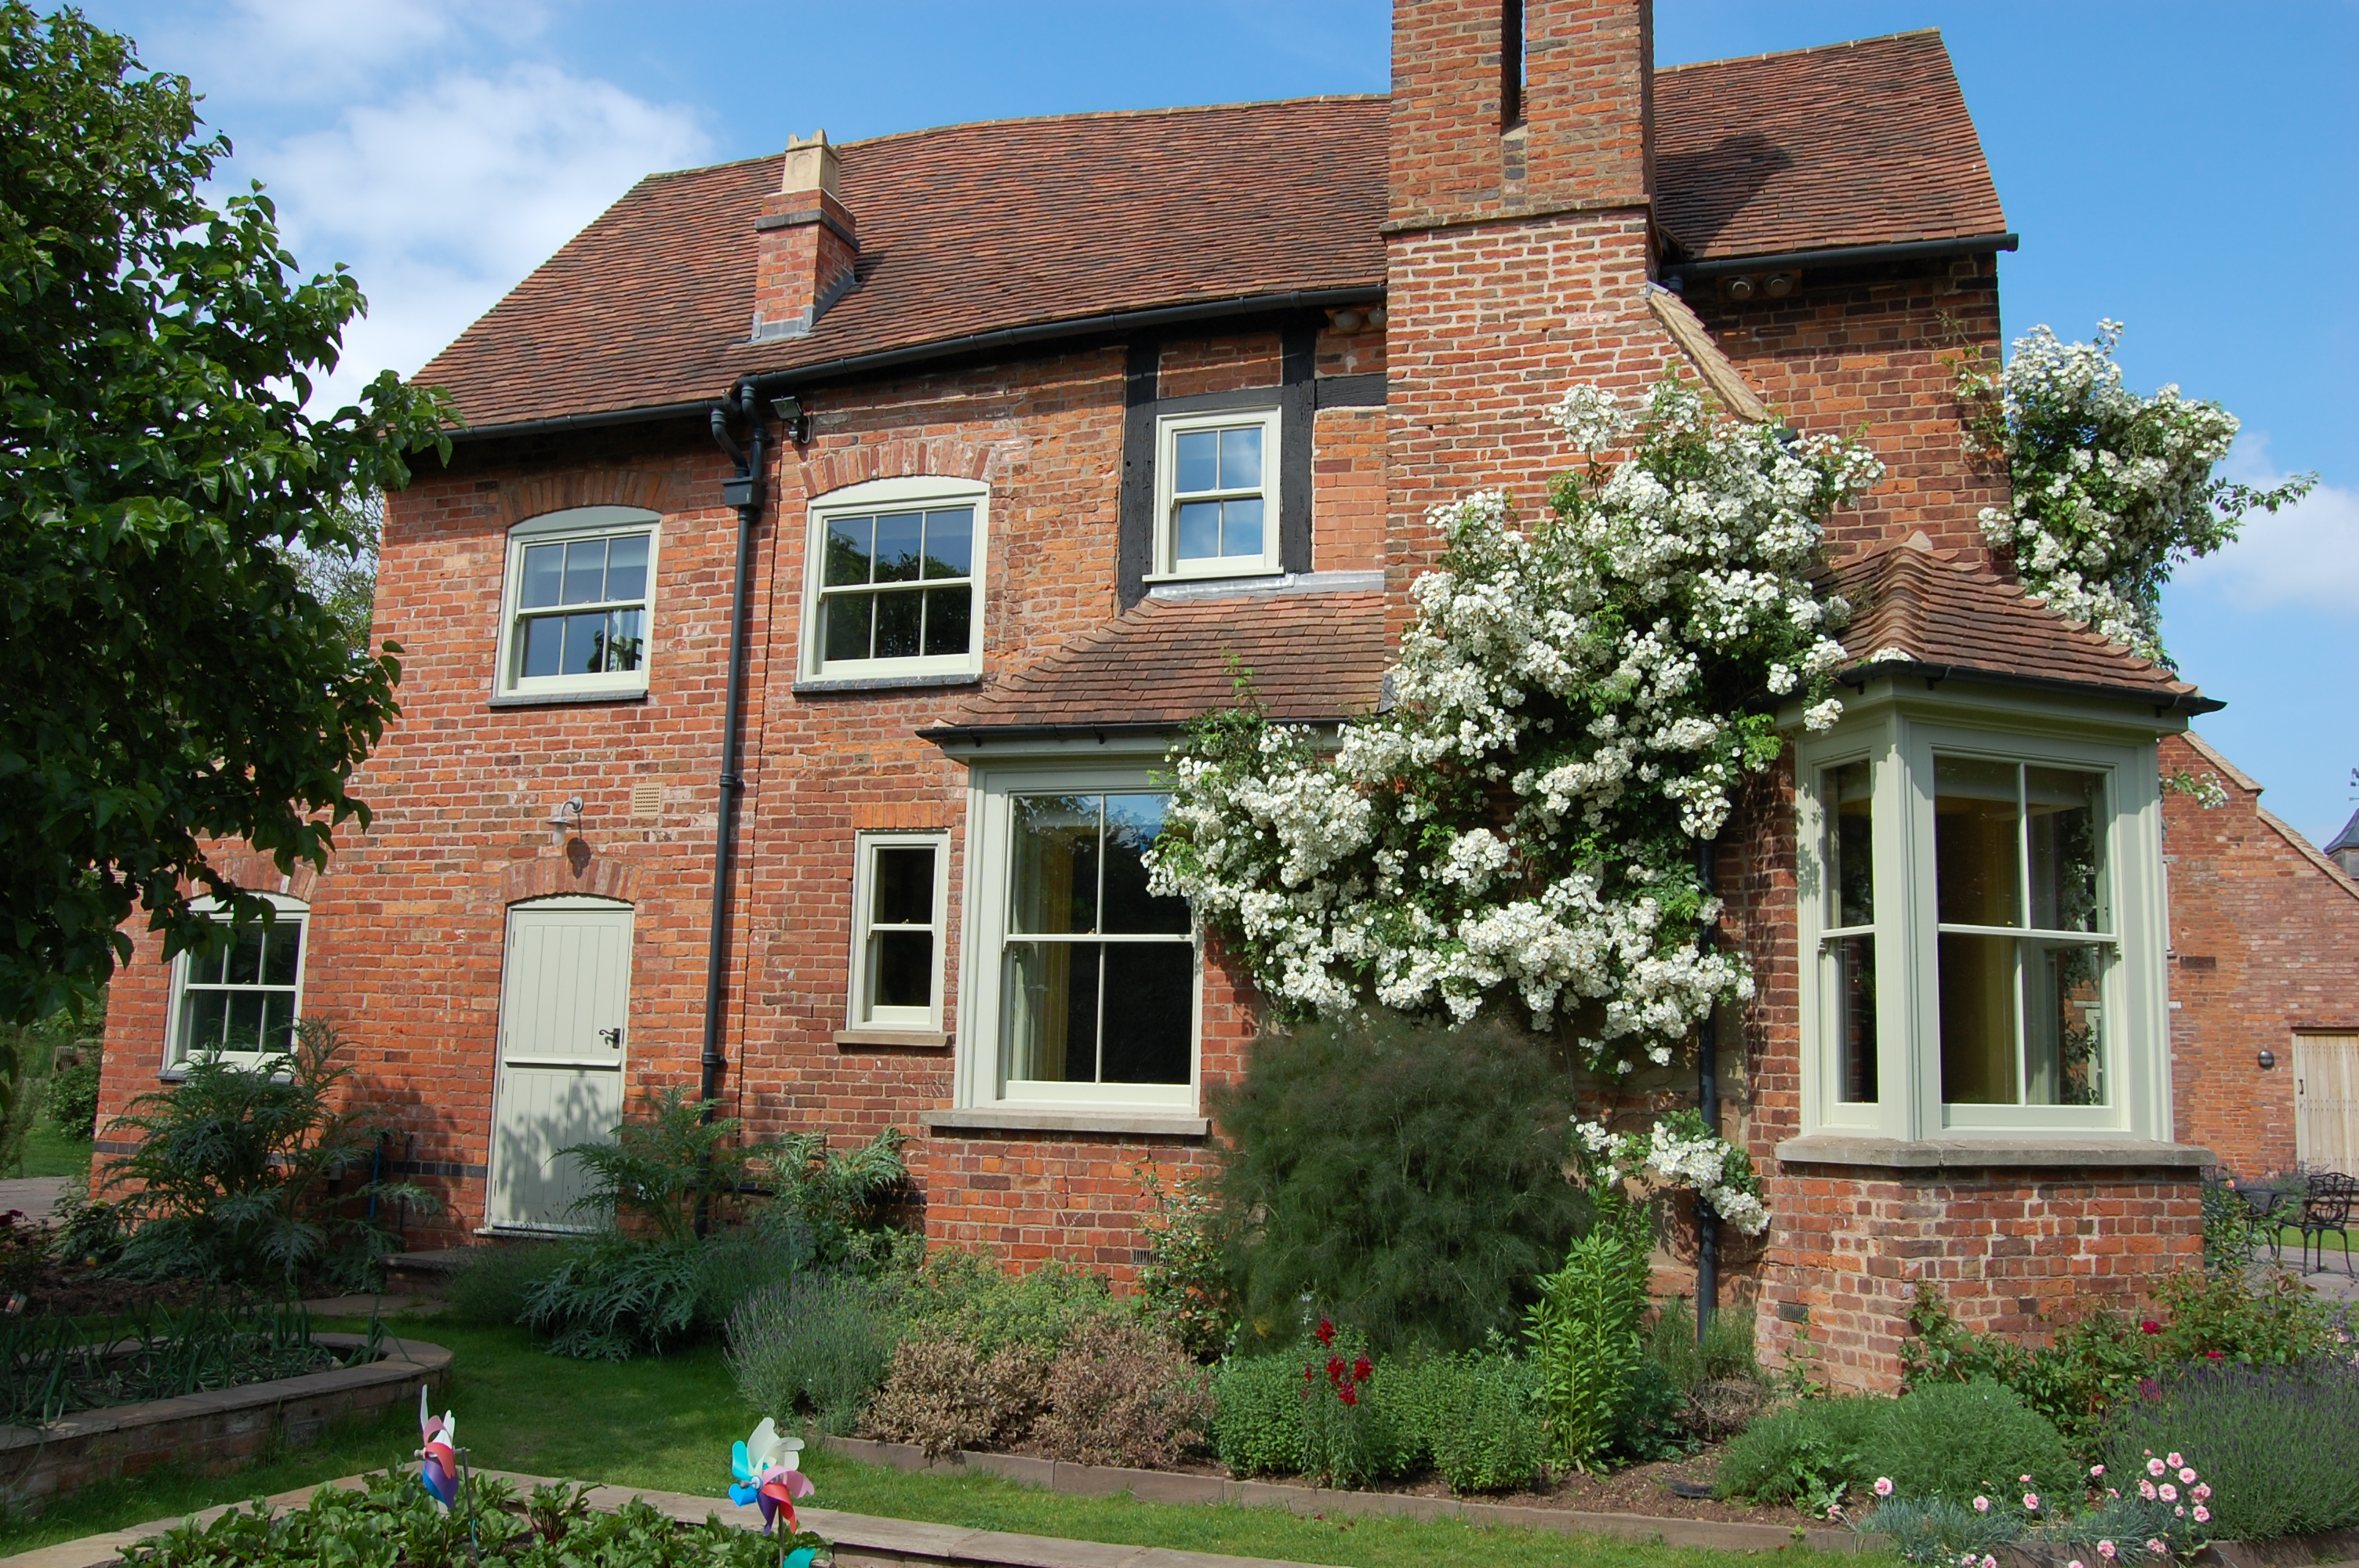 Replacement Double Glazed Windows In Classic Victorian Herefordshire Farmhouse